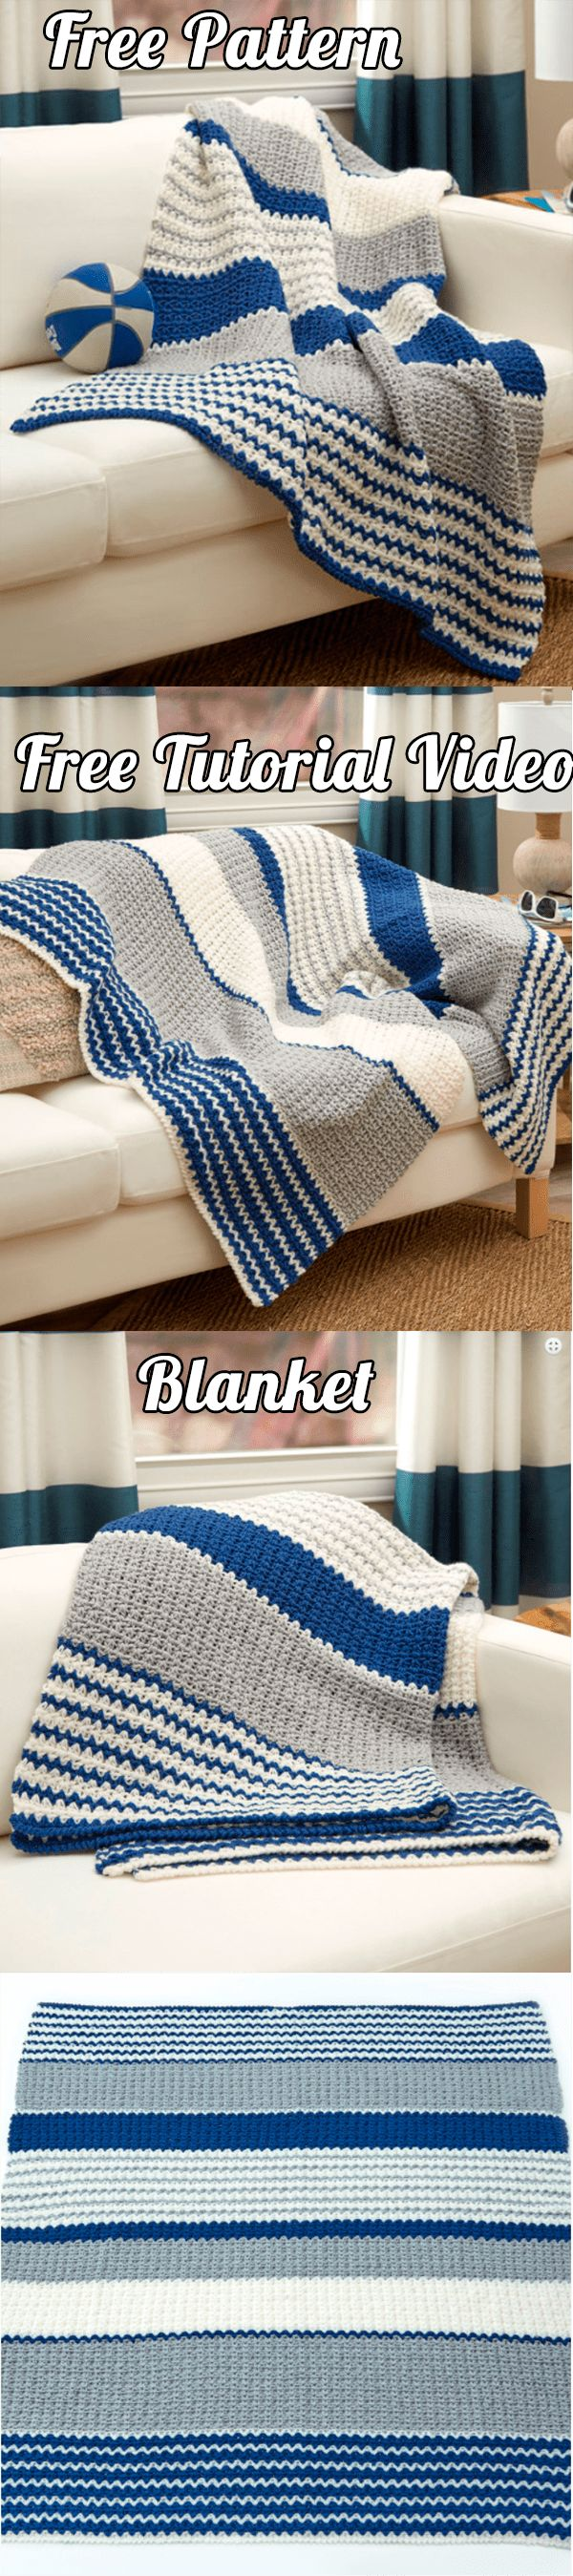 See How to Make Blue Crochet Blanket With Free Pattern and Video Tutorial | Blanket, Blanket Baby, Crochet Free Patterns, Crochet Free Standards, Crochet Free Tutorial, Blanket, Crochet Charts, Crochet Tips, Step by Step, Written Instructions, Crochet Fashion, Crochet Inspiration, Free Patterns, decoration, DIY, Crafts